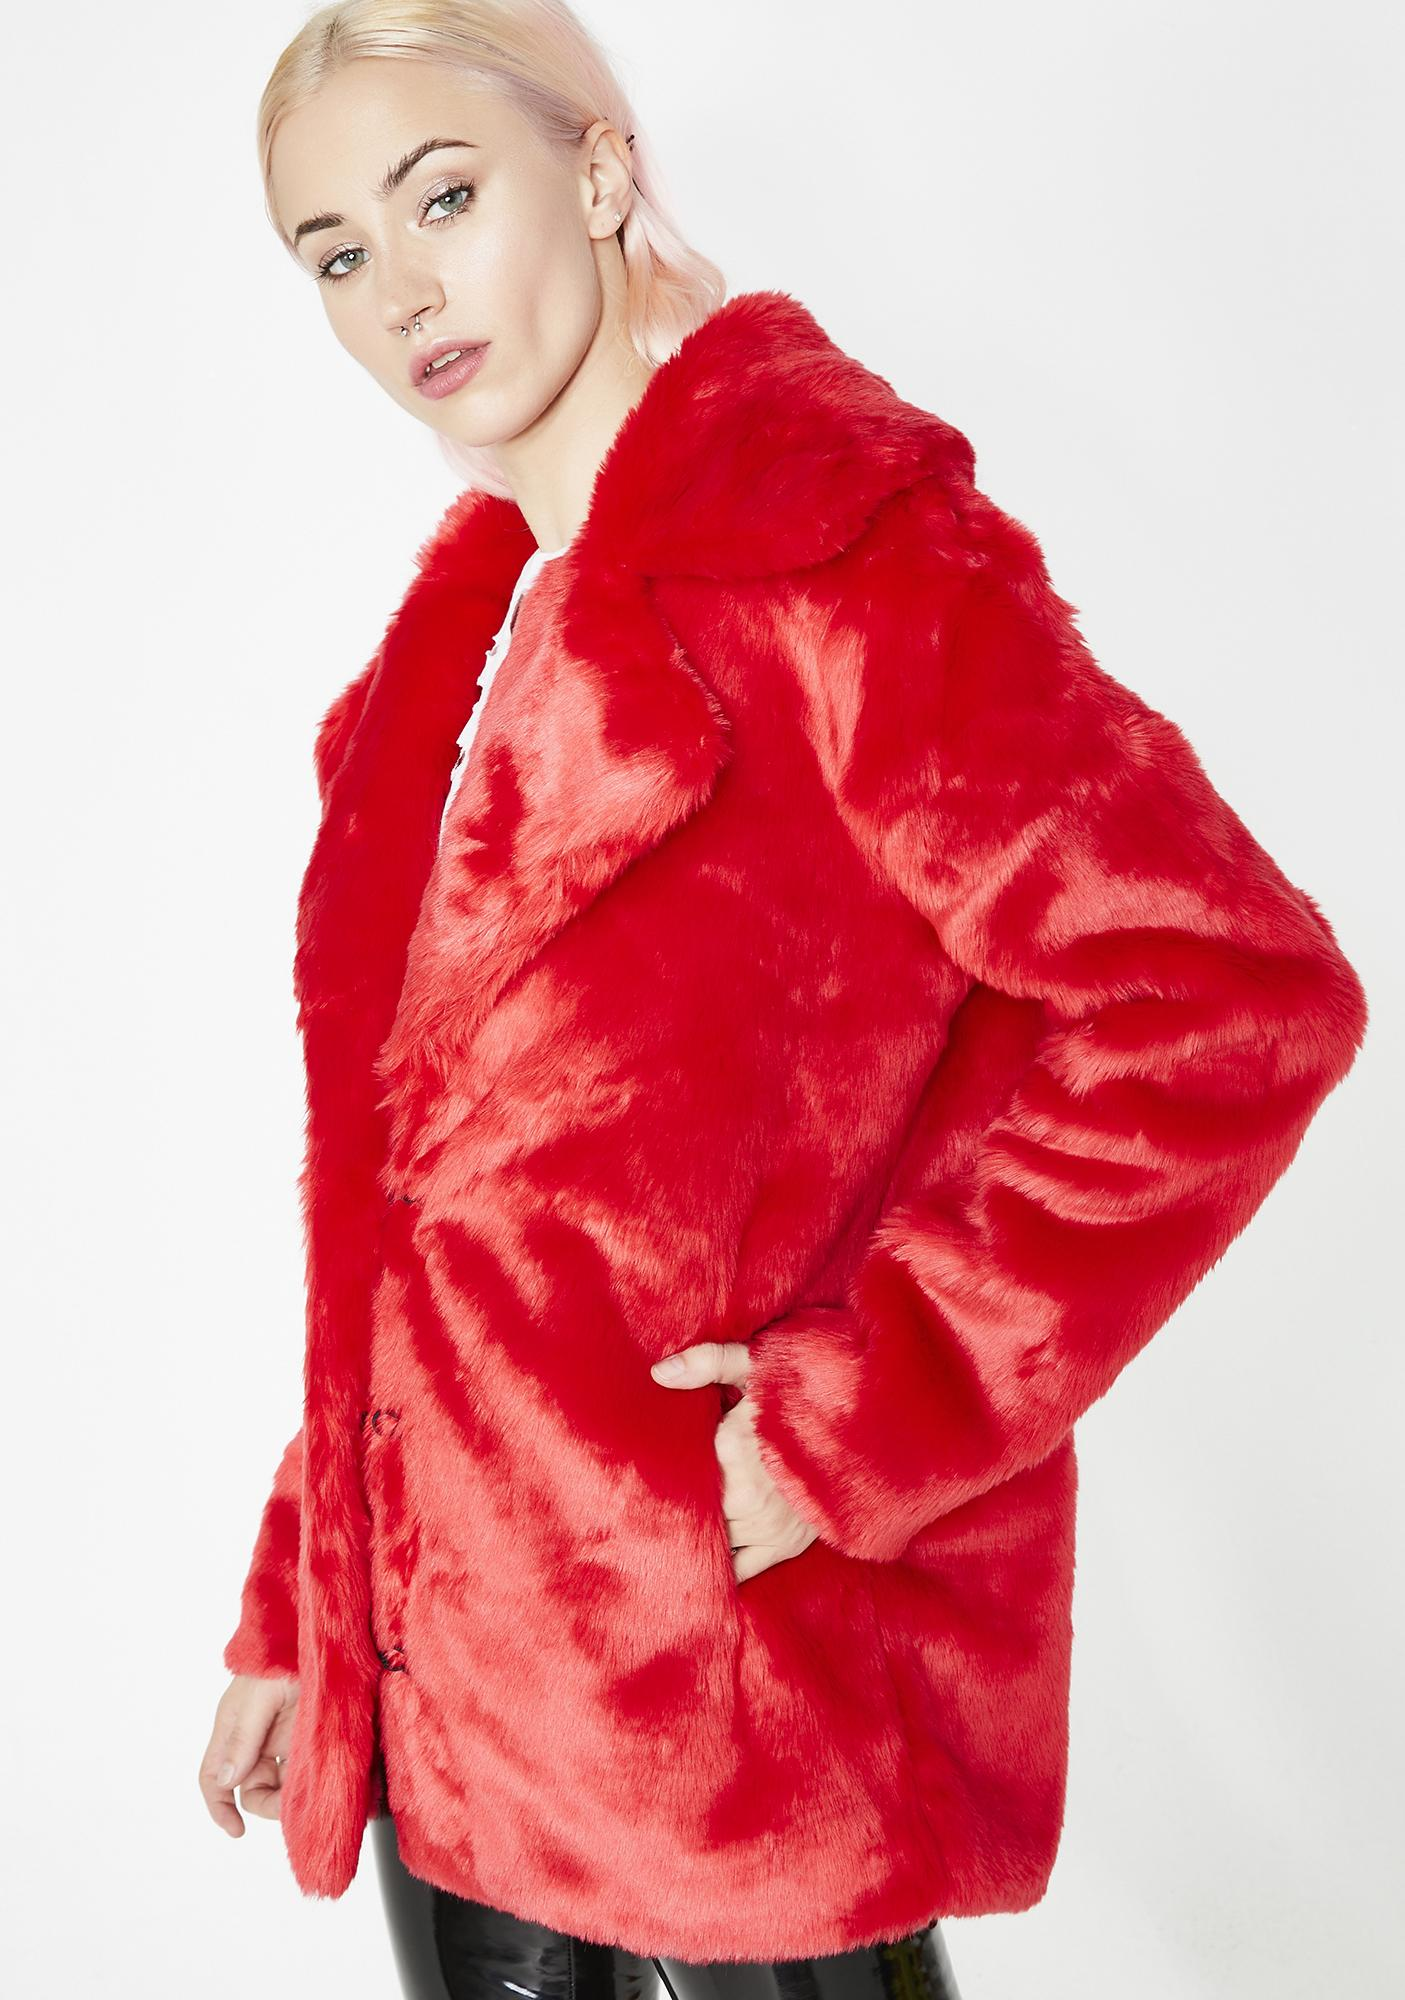 9027569a0 Racked Up Faux Fur Jacket